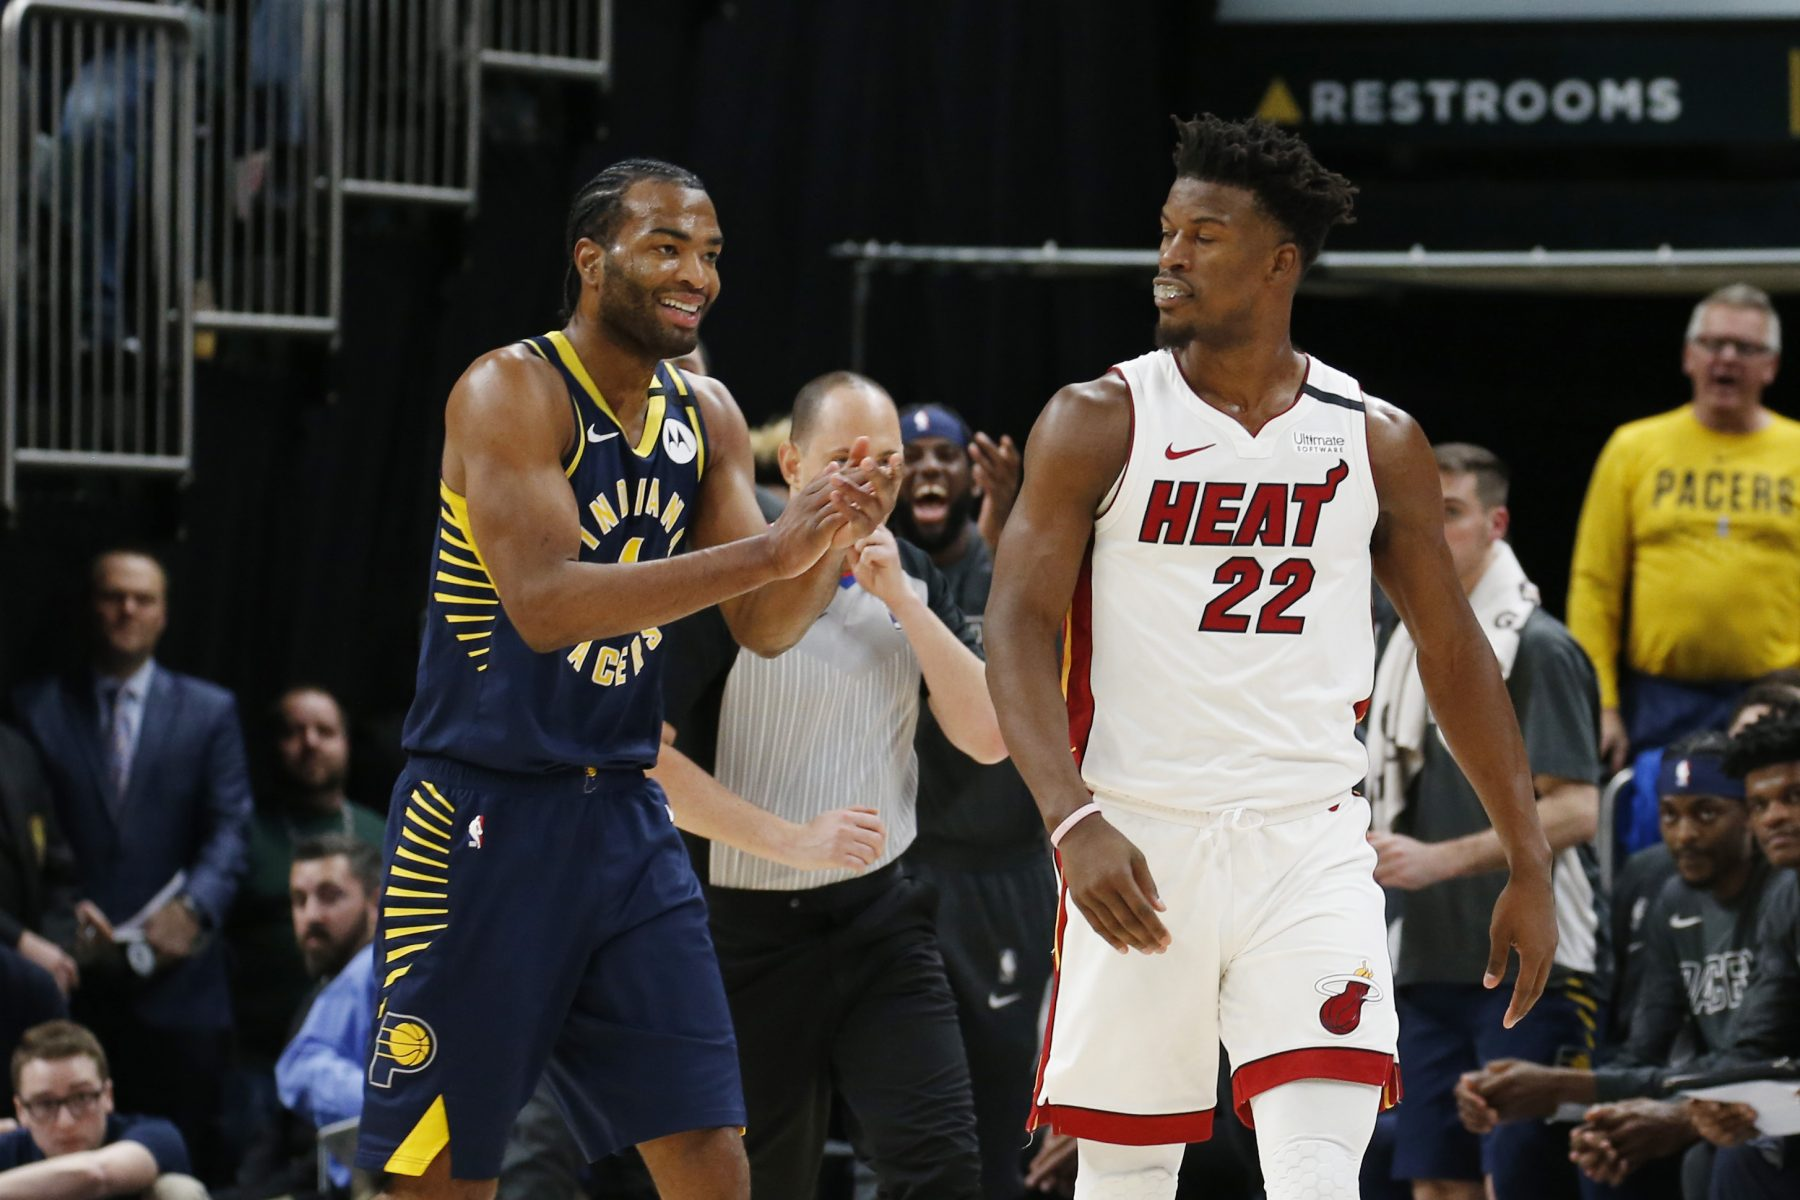 Heat's Jimmy Butler, Pacers' T.J. Warren fined for altercation